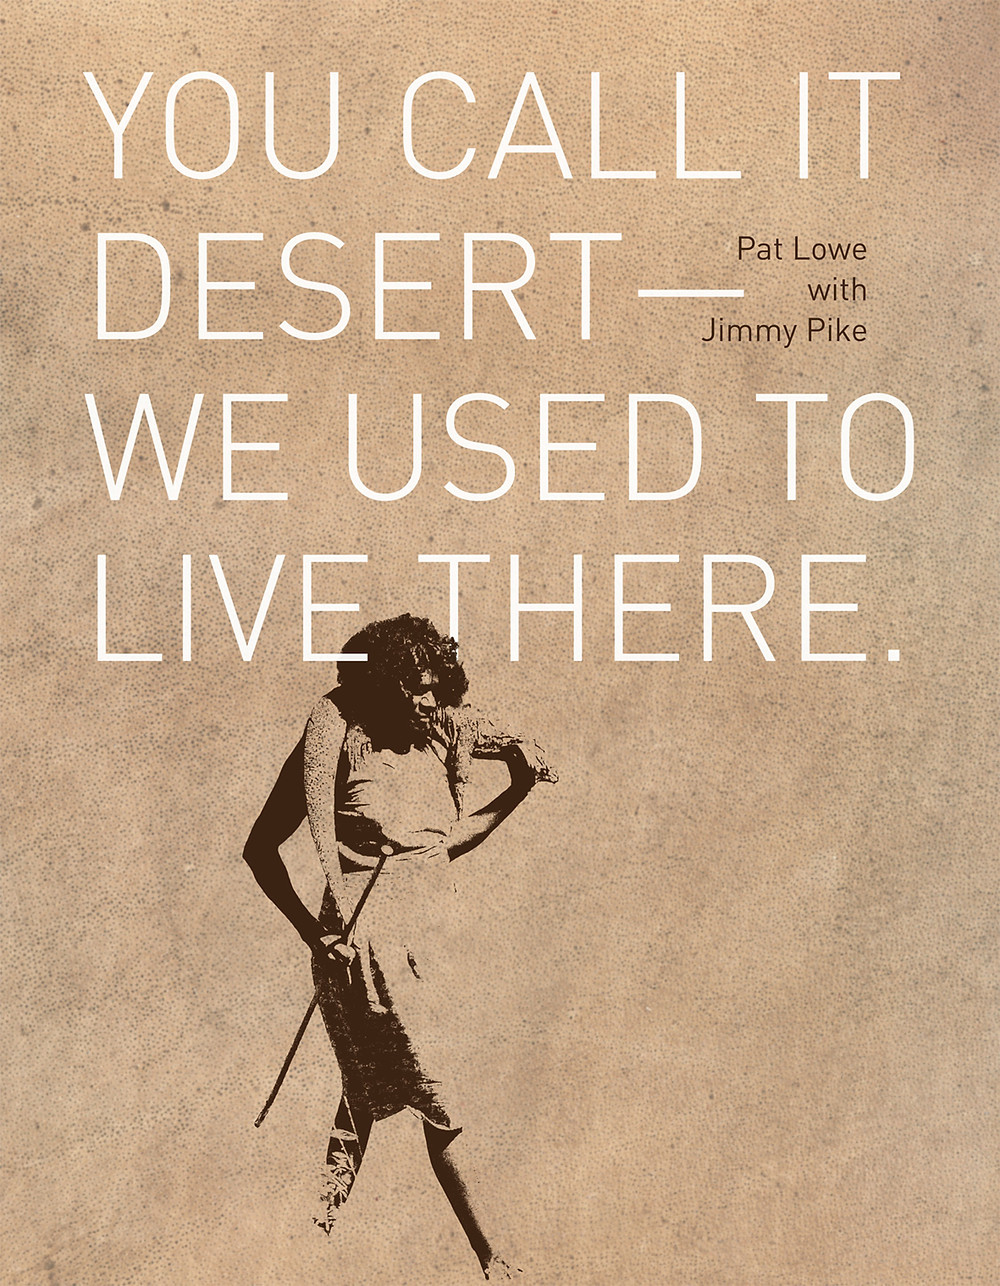 You Call it Desert, We Used to Live There by Pat Lowe, Jimmy Pike